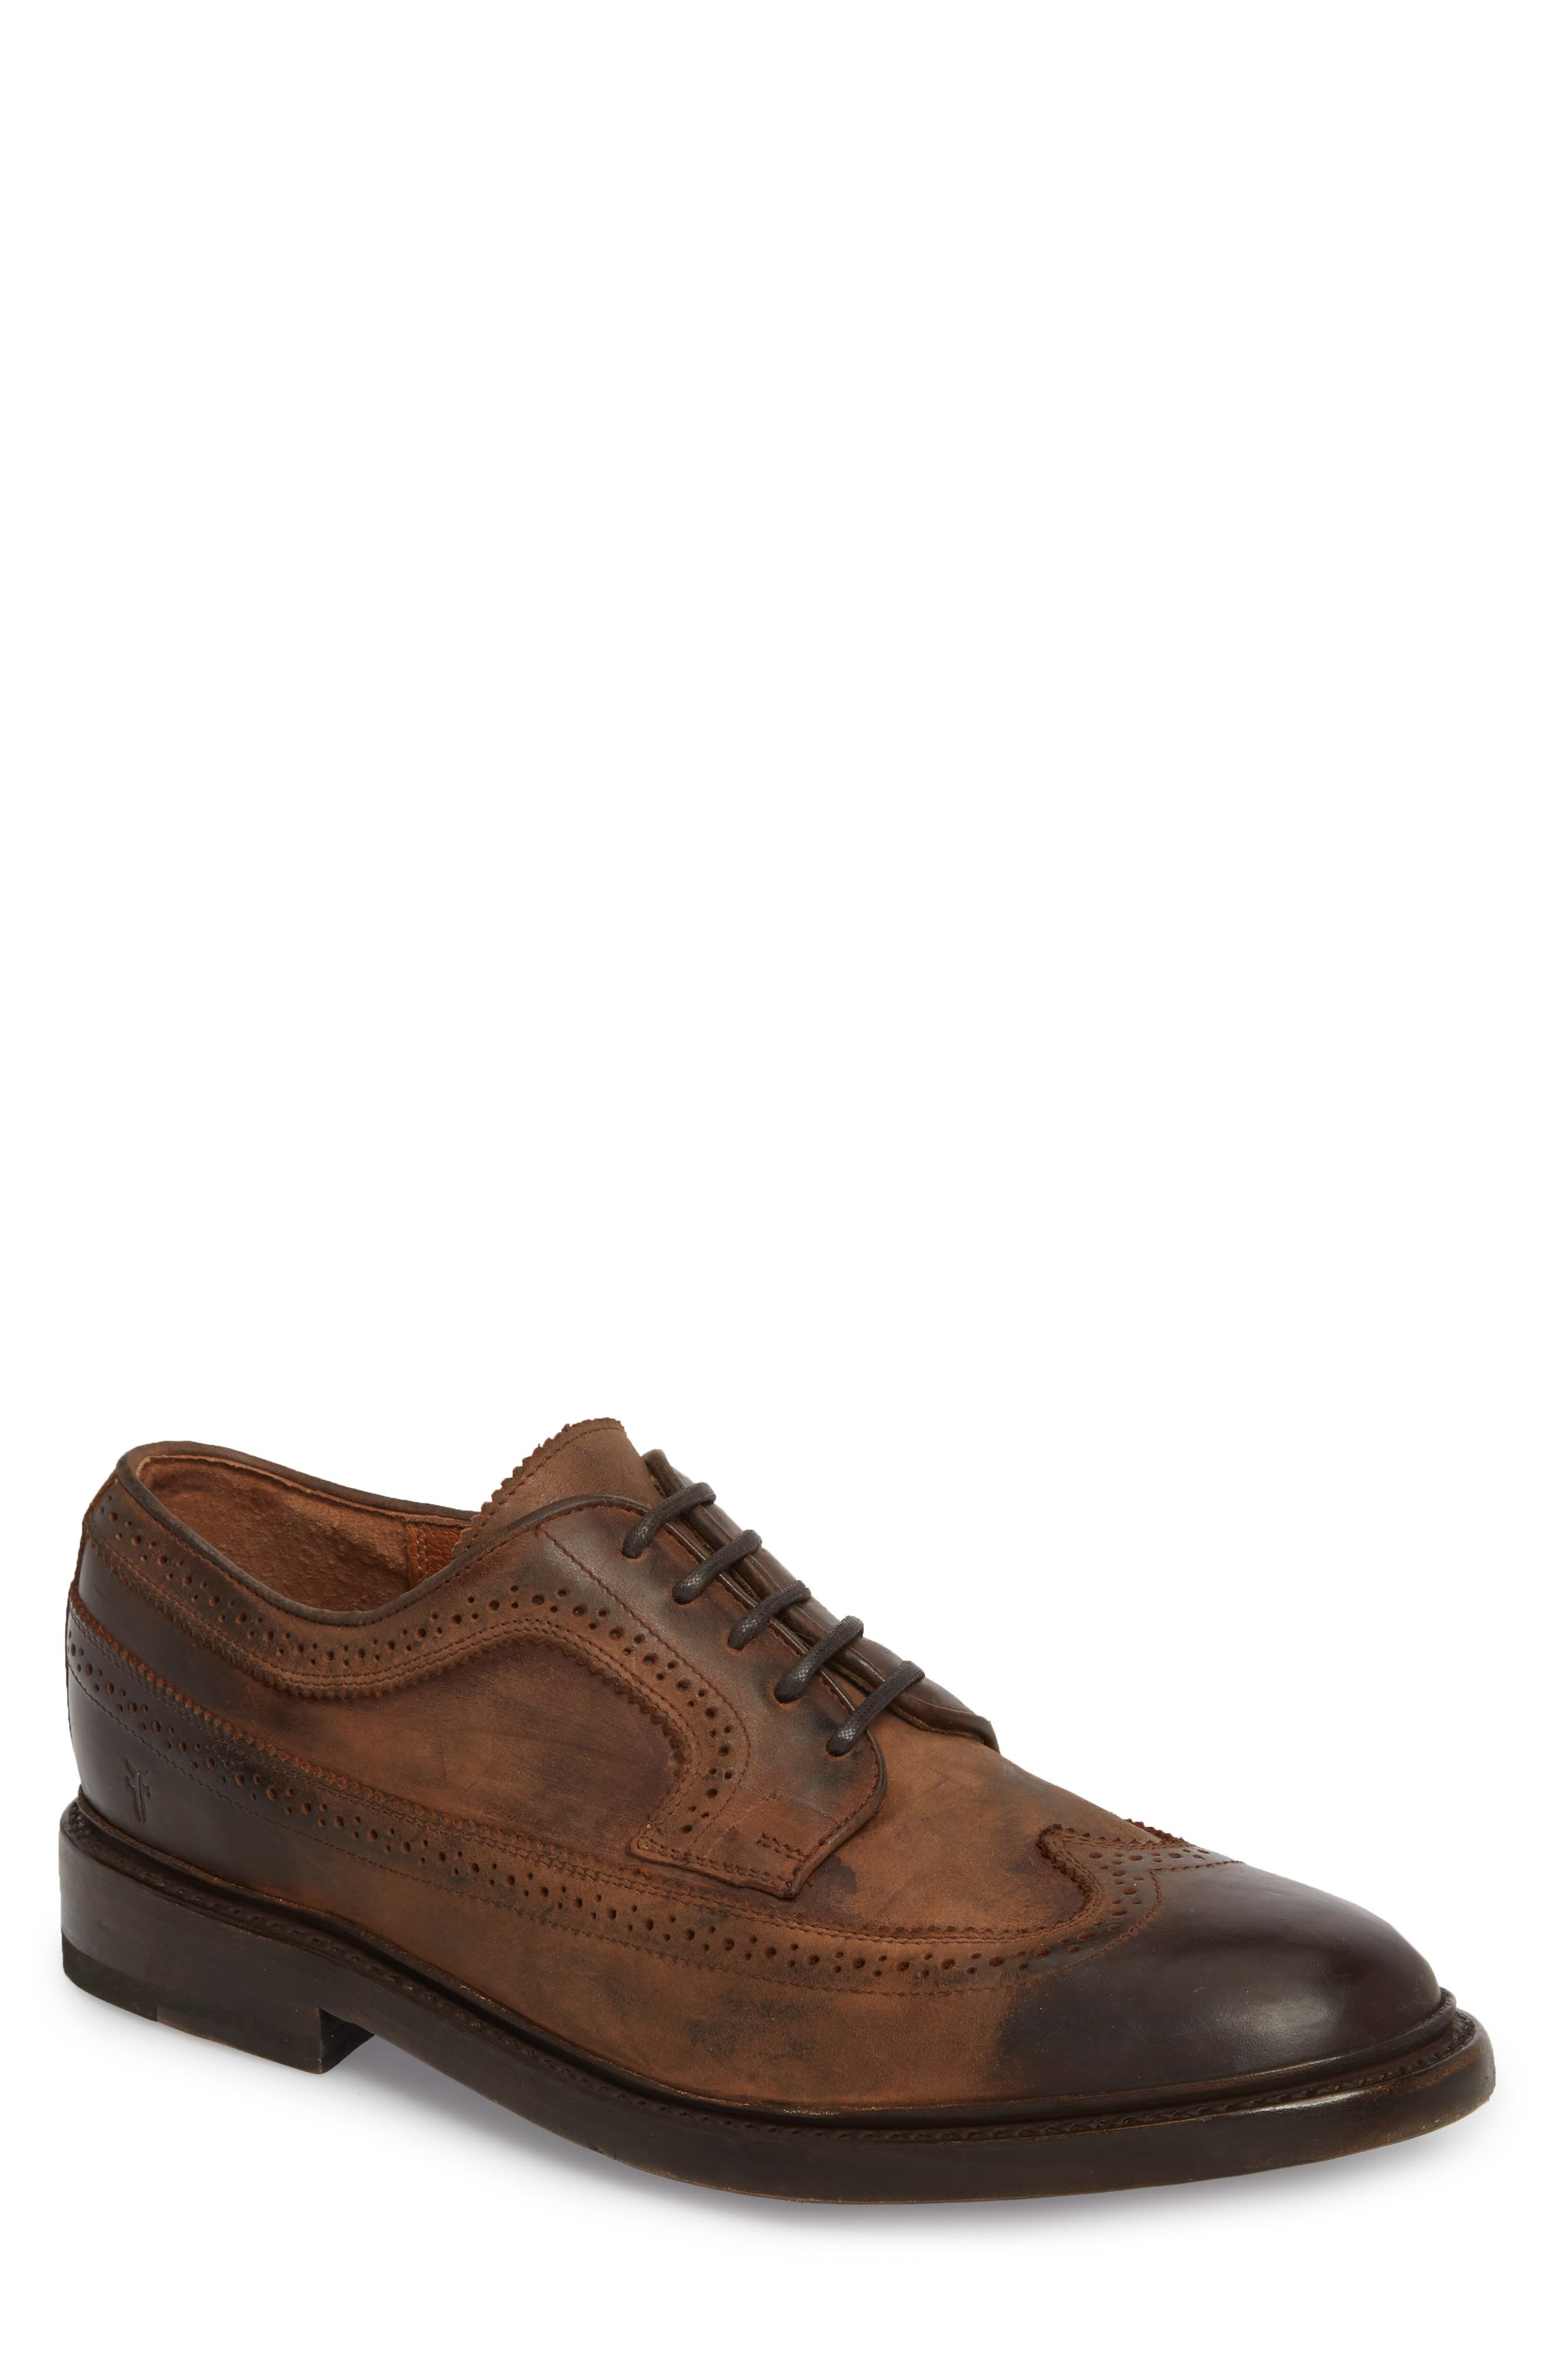 Jones Wingtip,                         Main,                         color, REDWOOD LEATHER